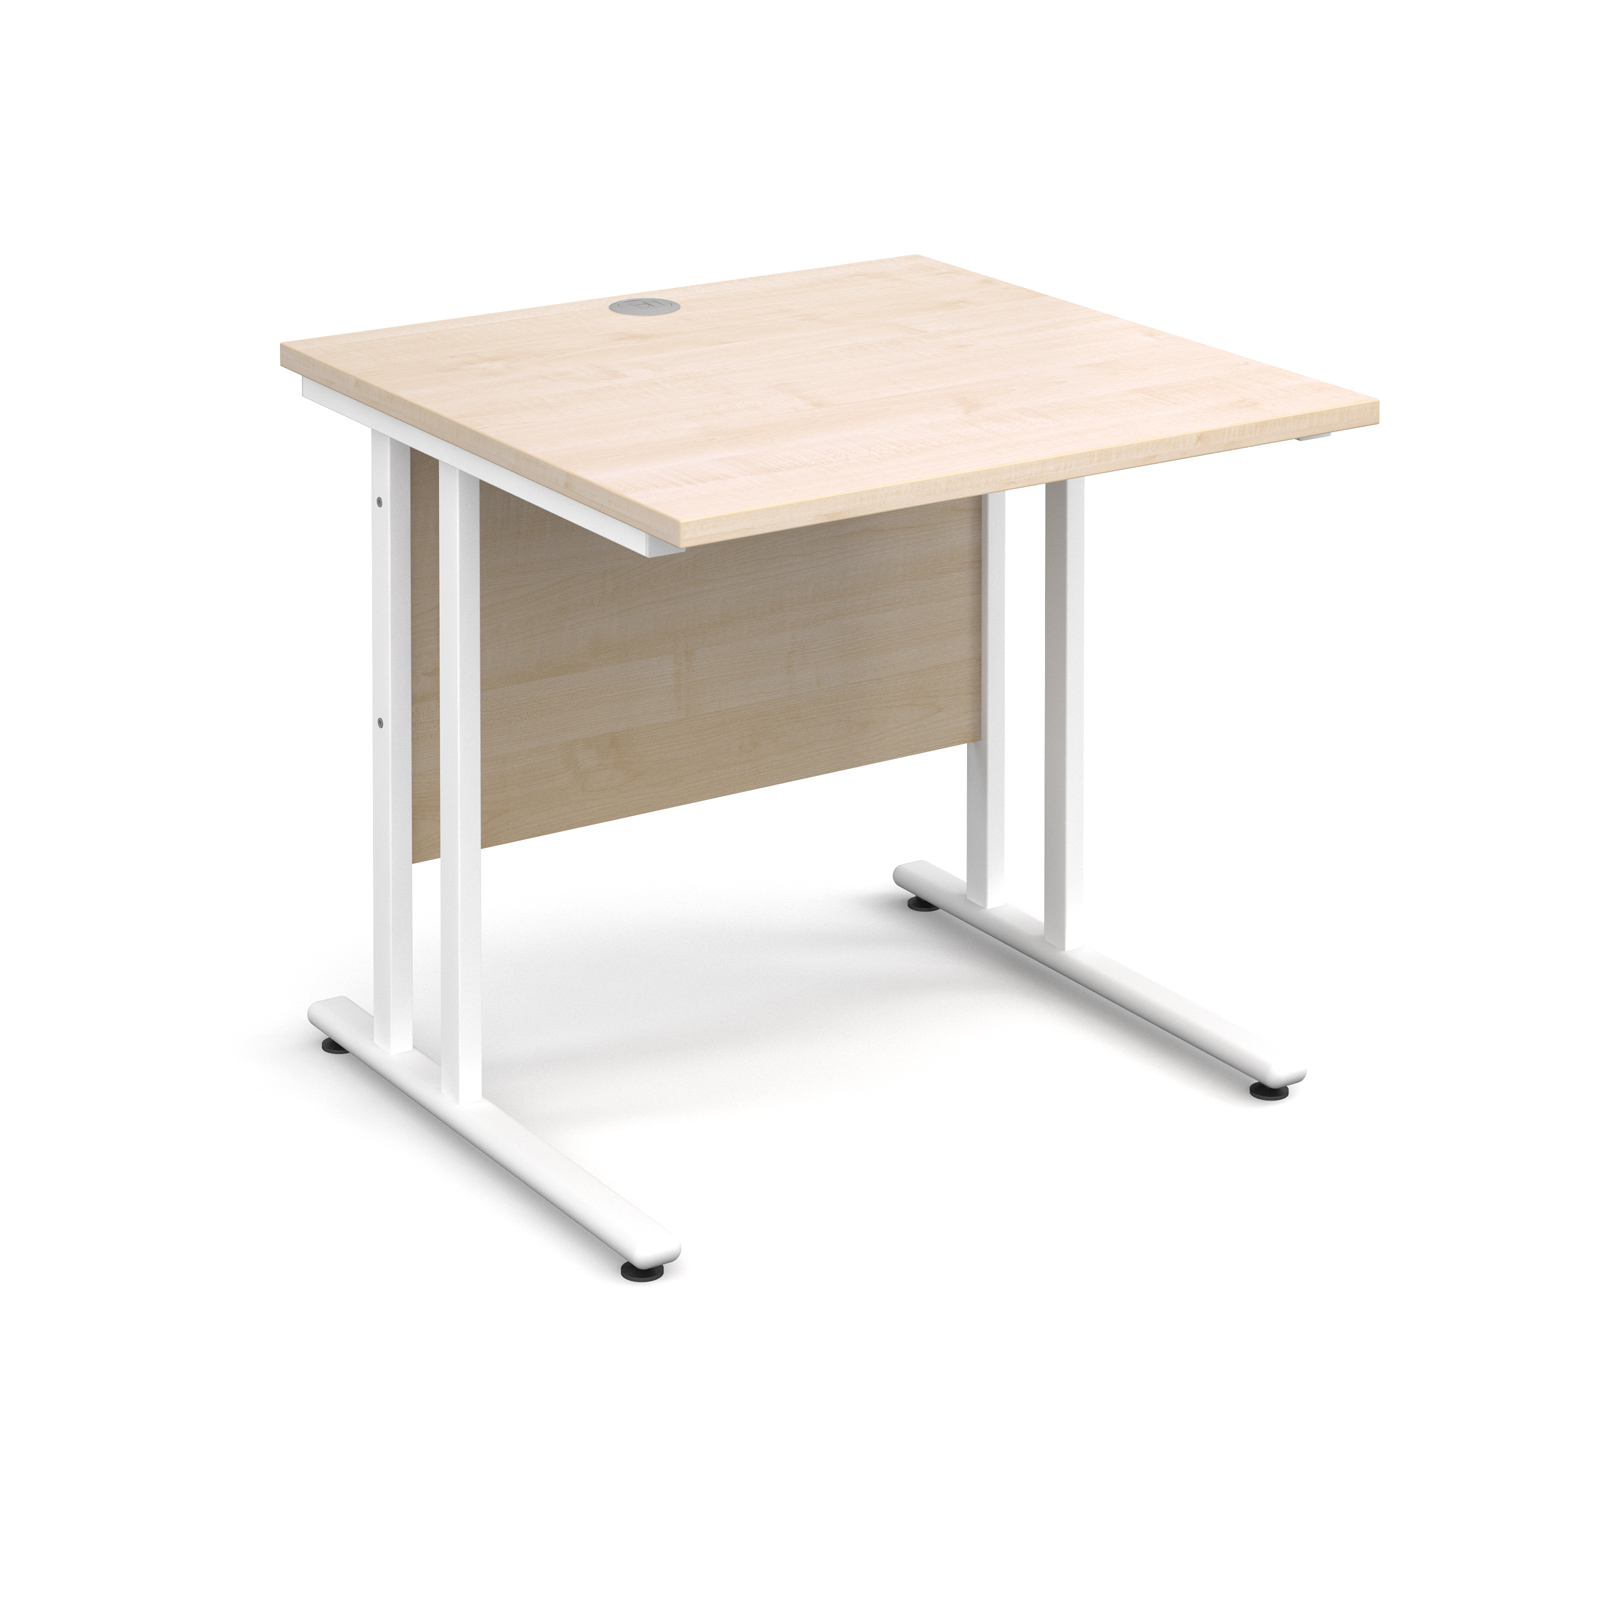 Dams Maestro 25 WL Maple Desk | Straight 800 Deep